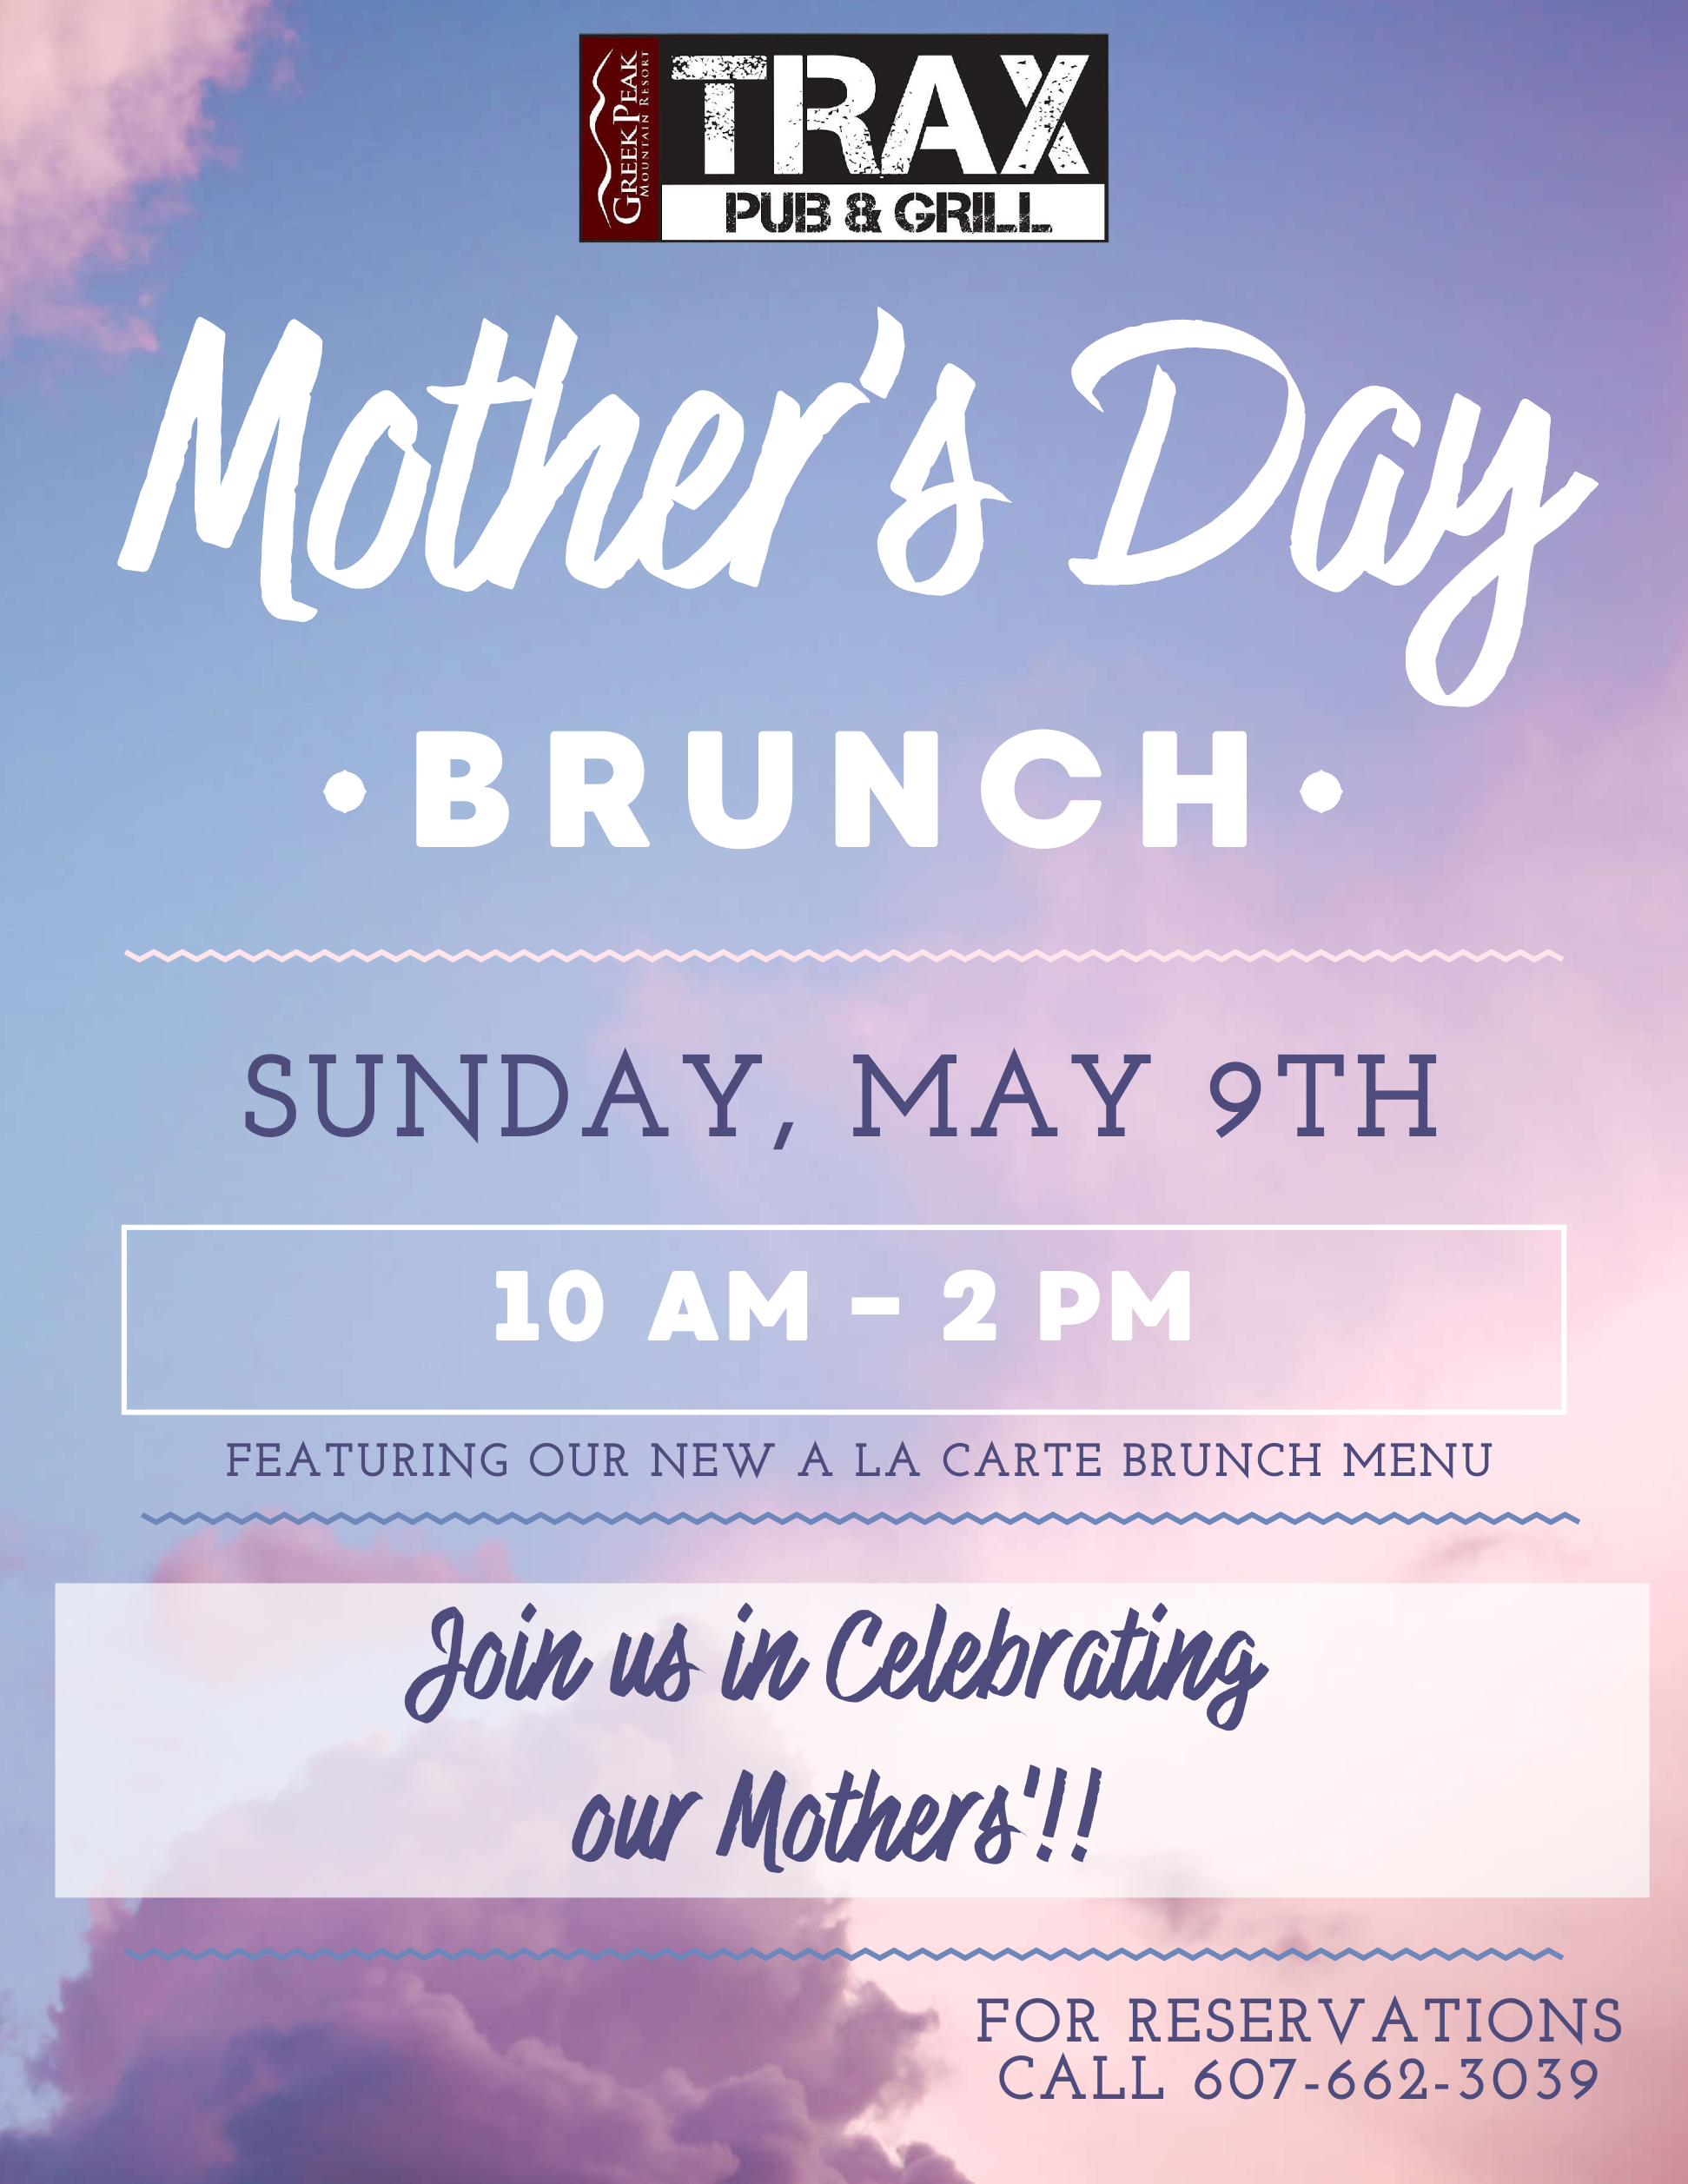 Mothers day brunch at Trax flyer. This event is Sunday, May 9th, 2021 from 10am-2pm and it features a new brunch menu. For reservations, call: 607-662-3039.